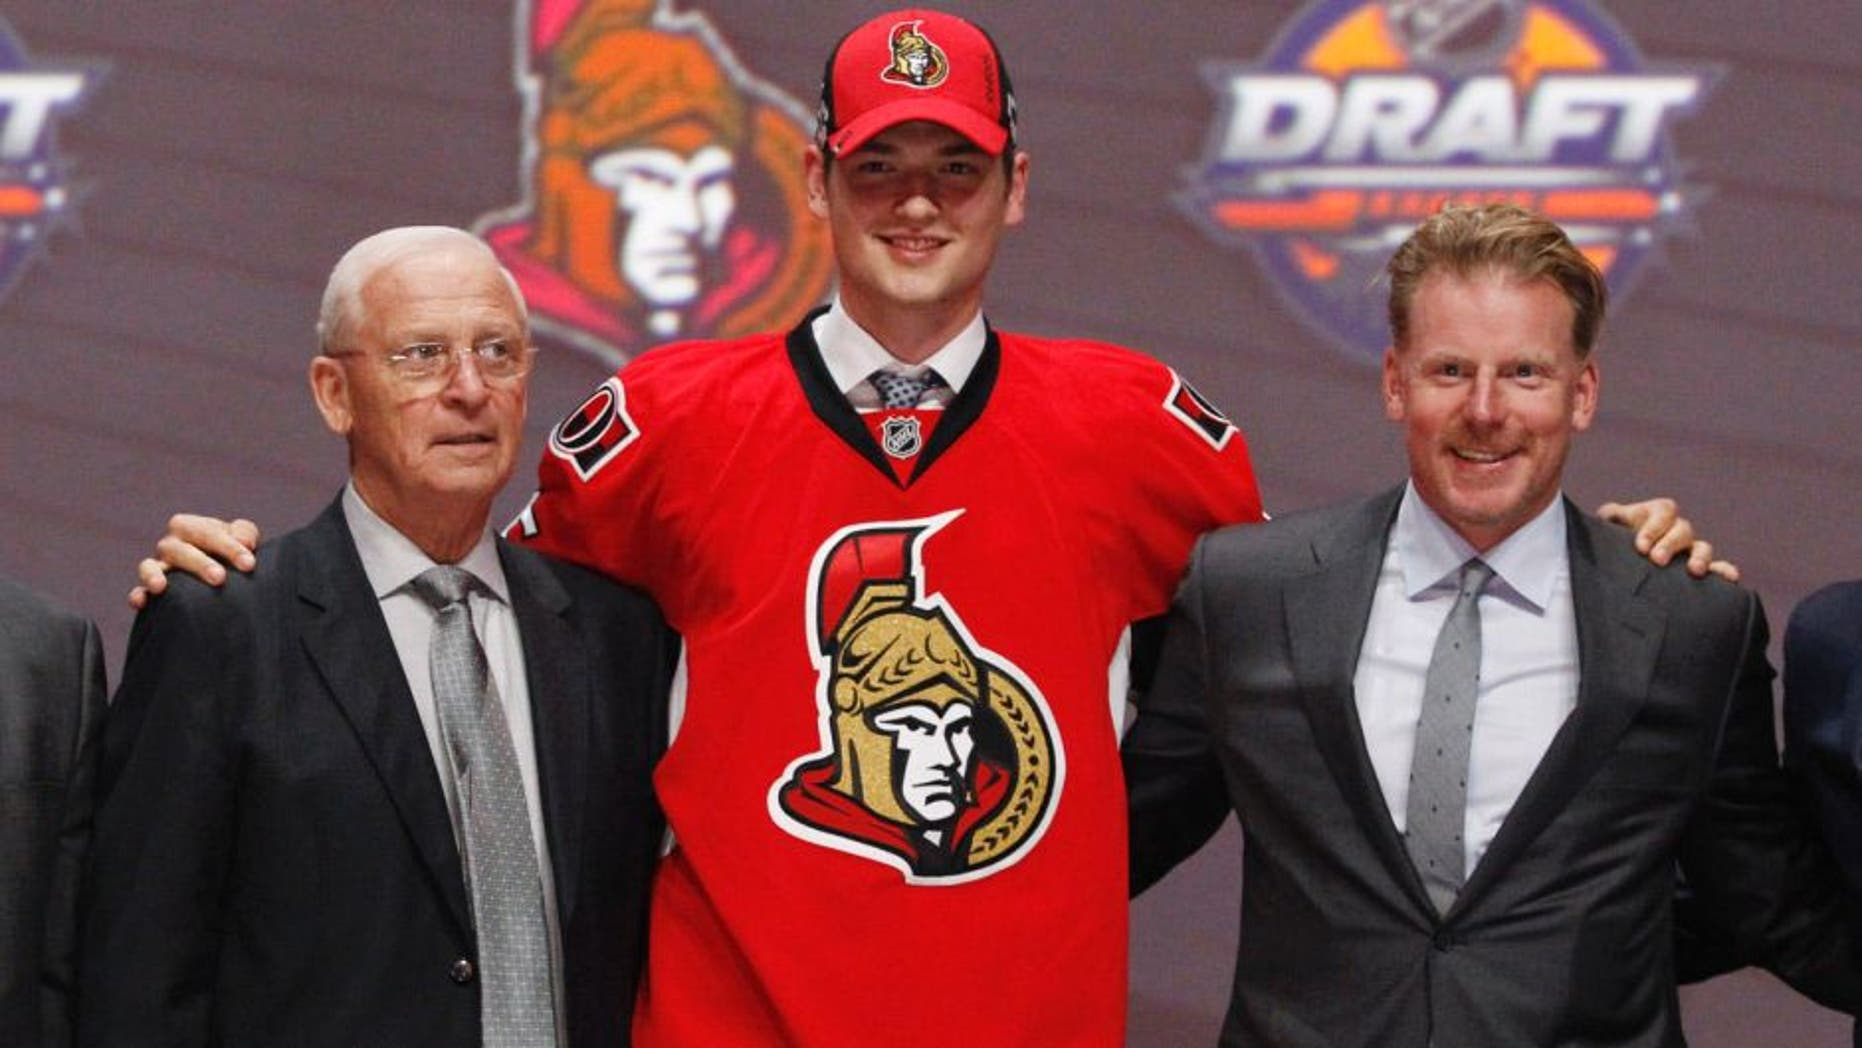 Jun 24, 2016; Buffalo, NY, USA; Logan Brown poses for a photo after being selected as the number eleven overall draft pick by the Ottawa Senators in the first round of the 2016 NHL Draft at the First Niagra Center. Mandatory Credit: Timothy T. Ludwig-USA TODAY Sports